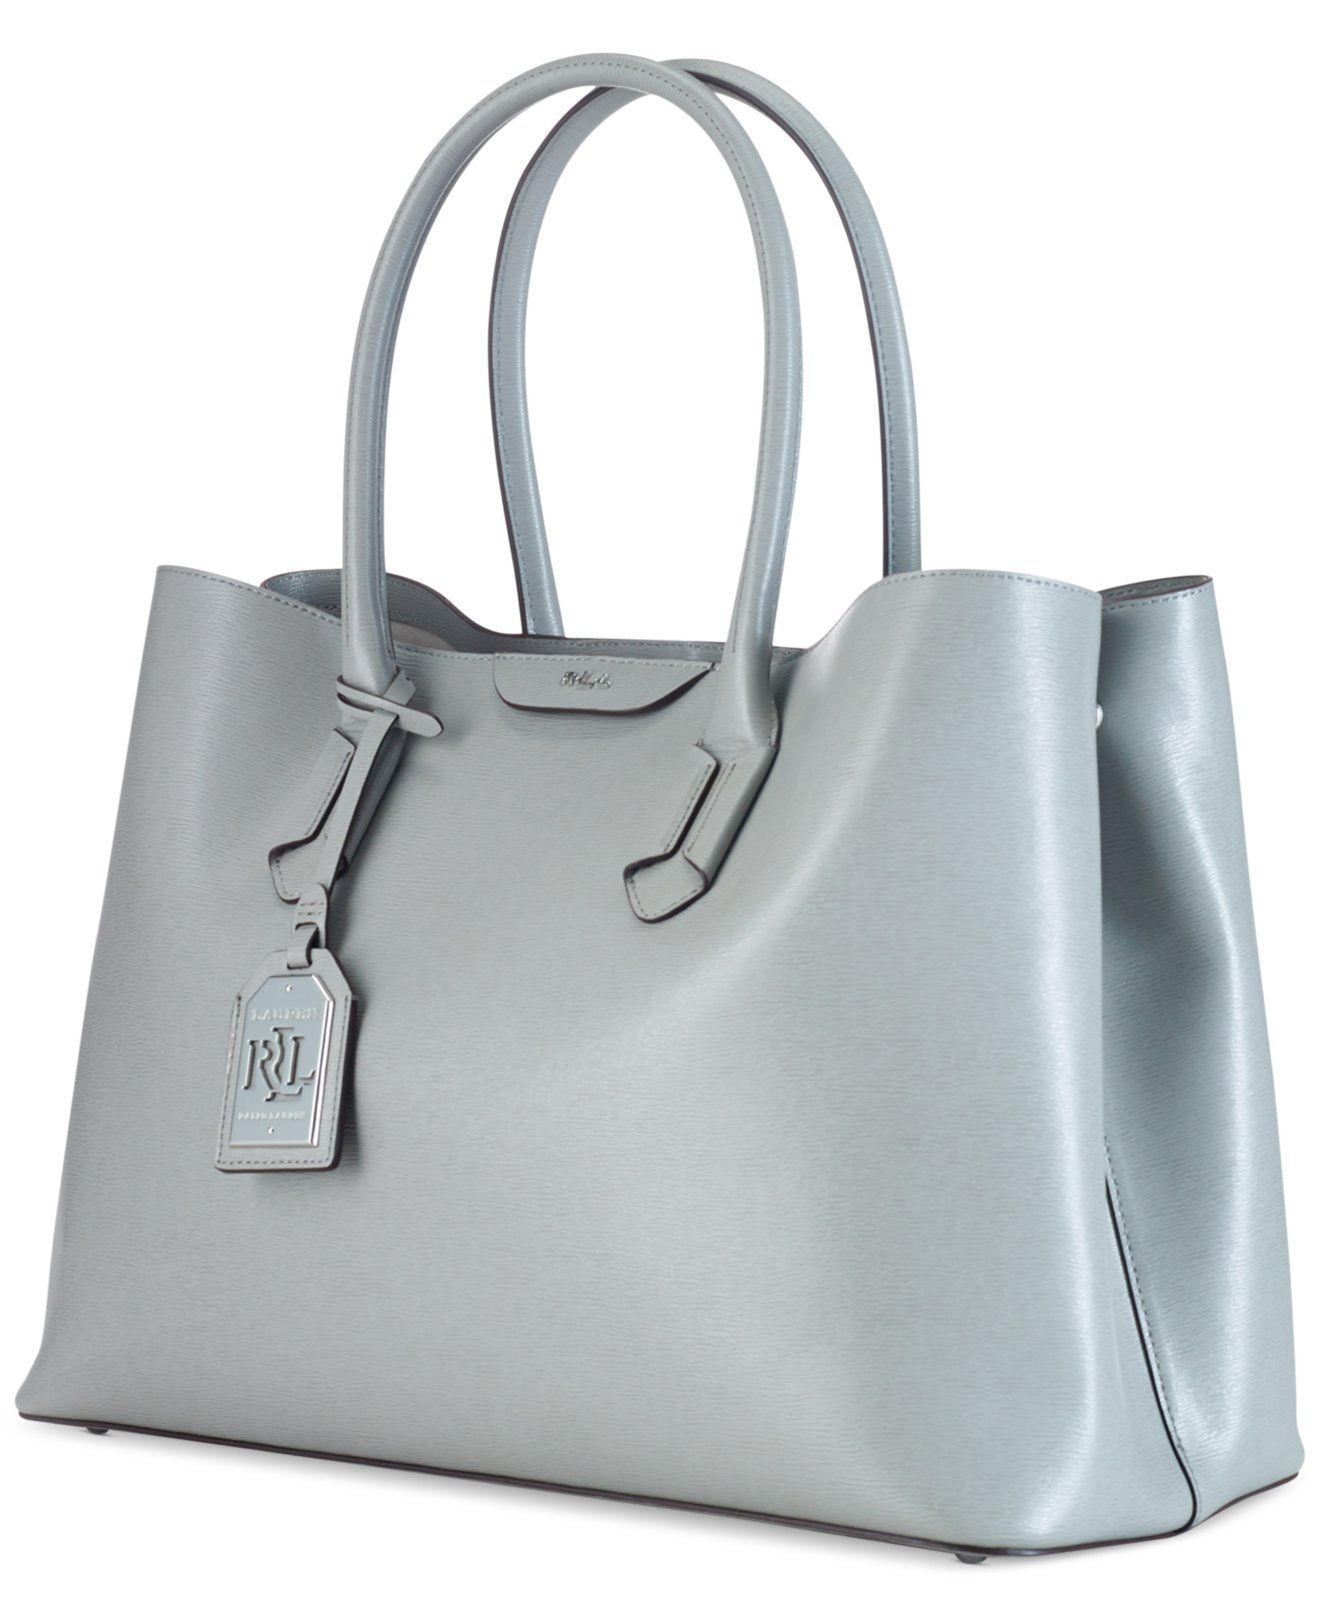 Lauren Ralph Lauren Tate City Tote - All Handbags - Handbags \u0026 Accessories  - Macy\u0027s